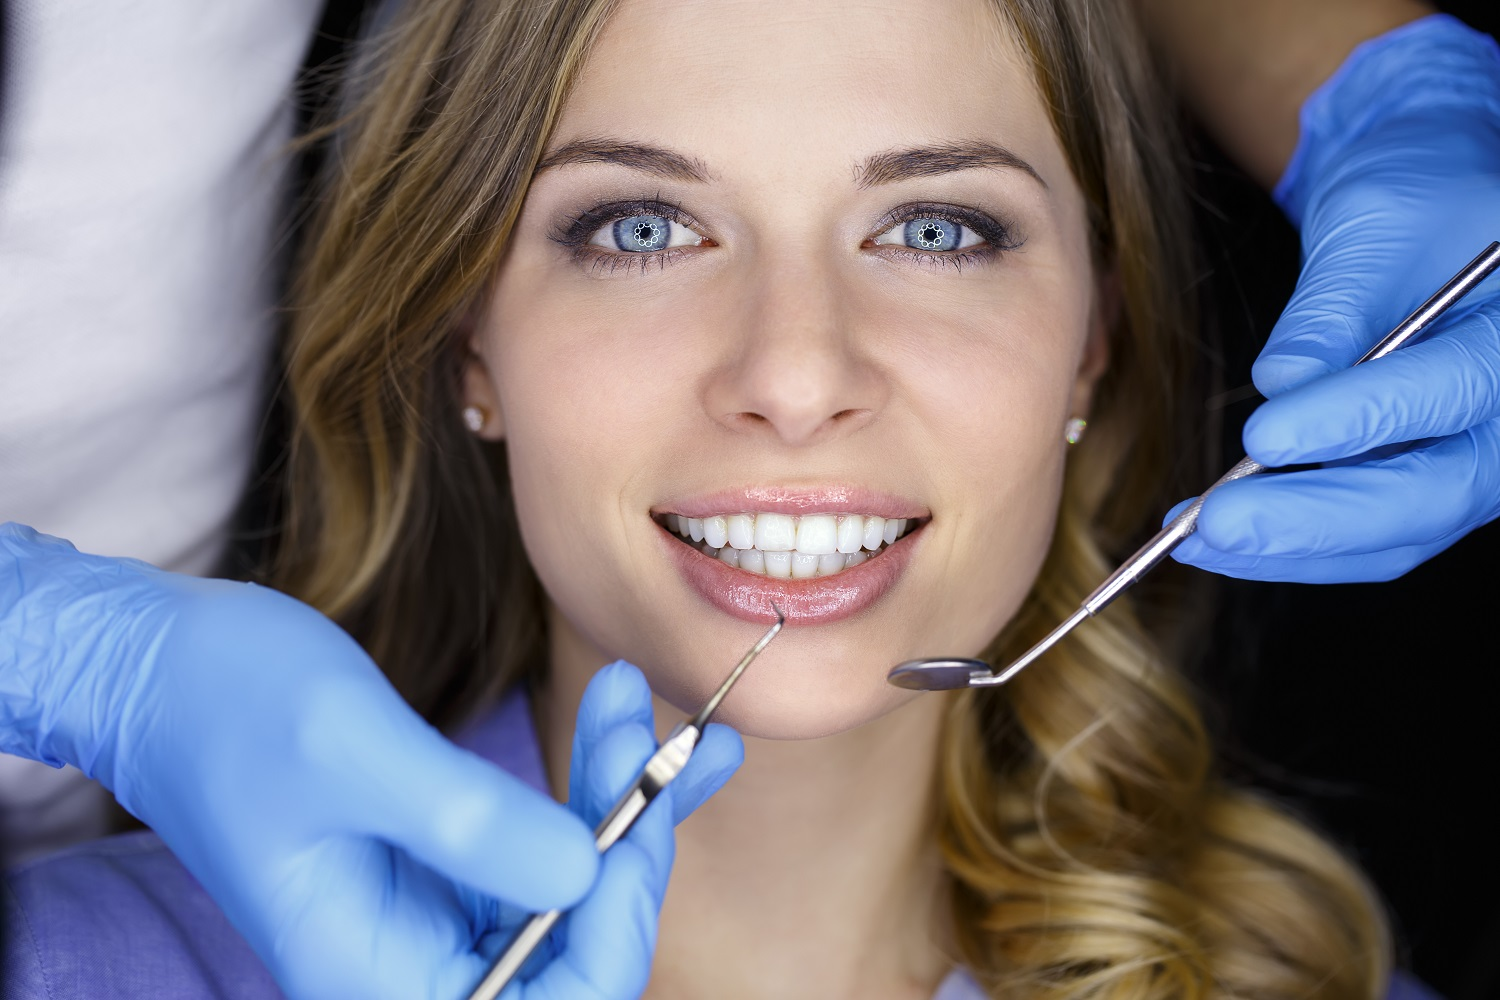 dental hygiene - dental checkups - toothache